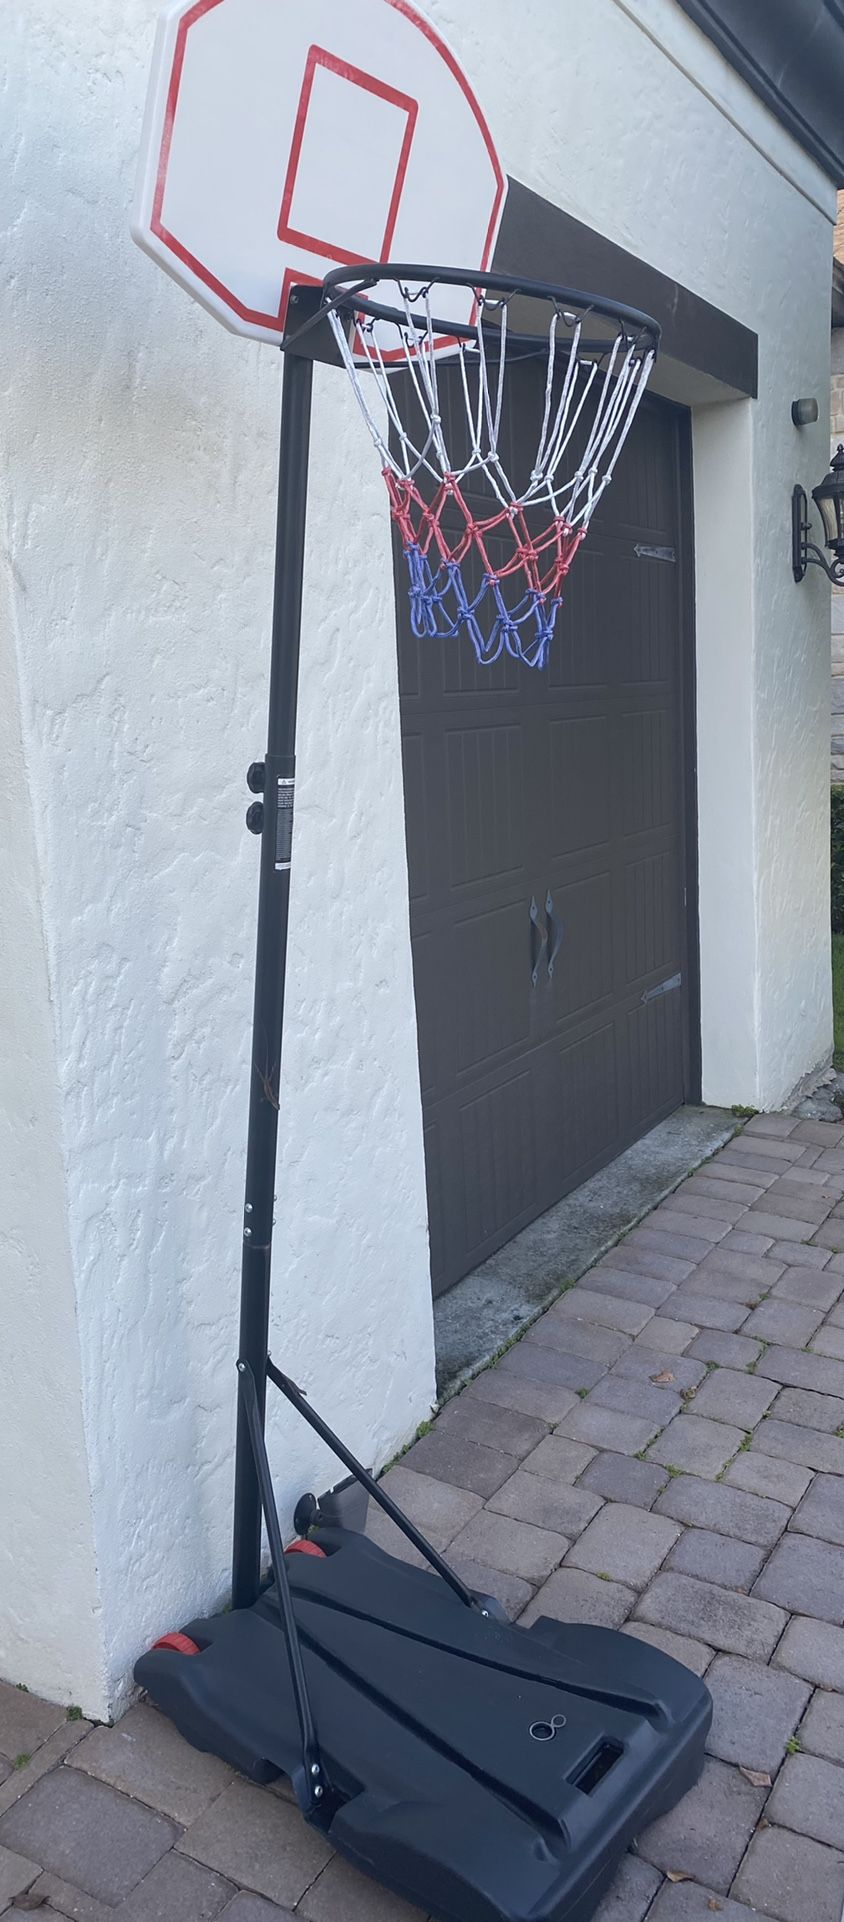 Basketball Junior Height-Adjustable 28 In. with Wheels